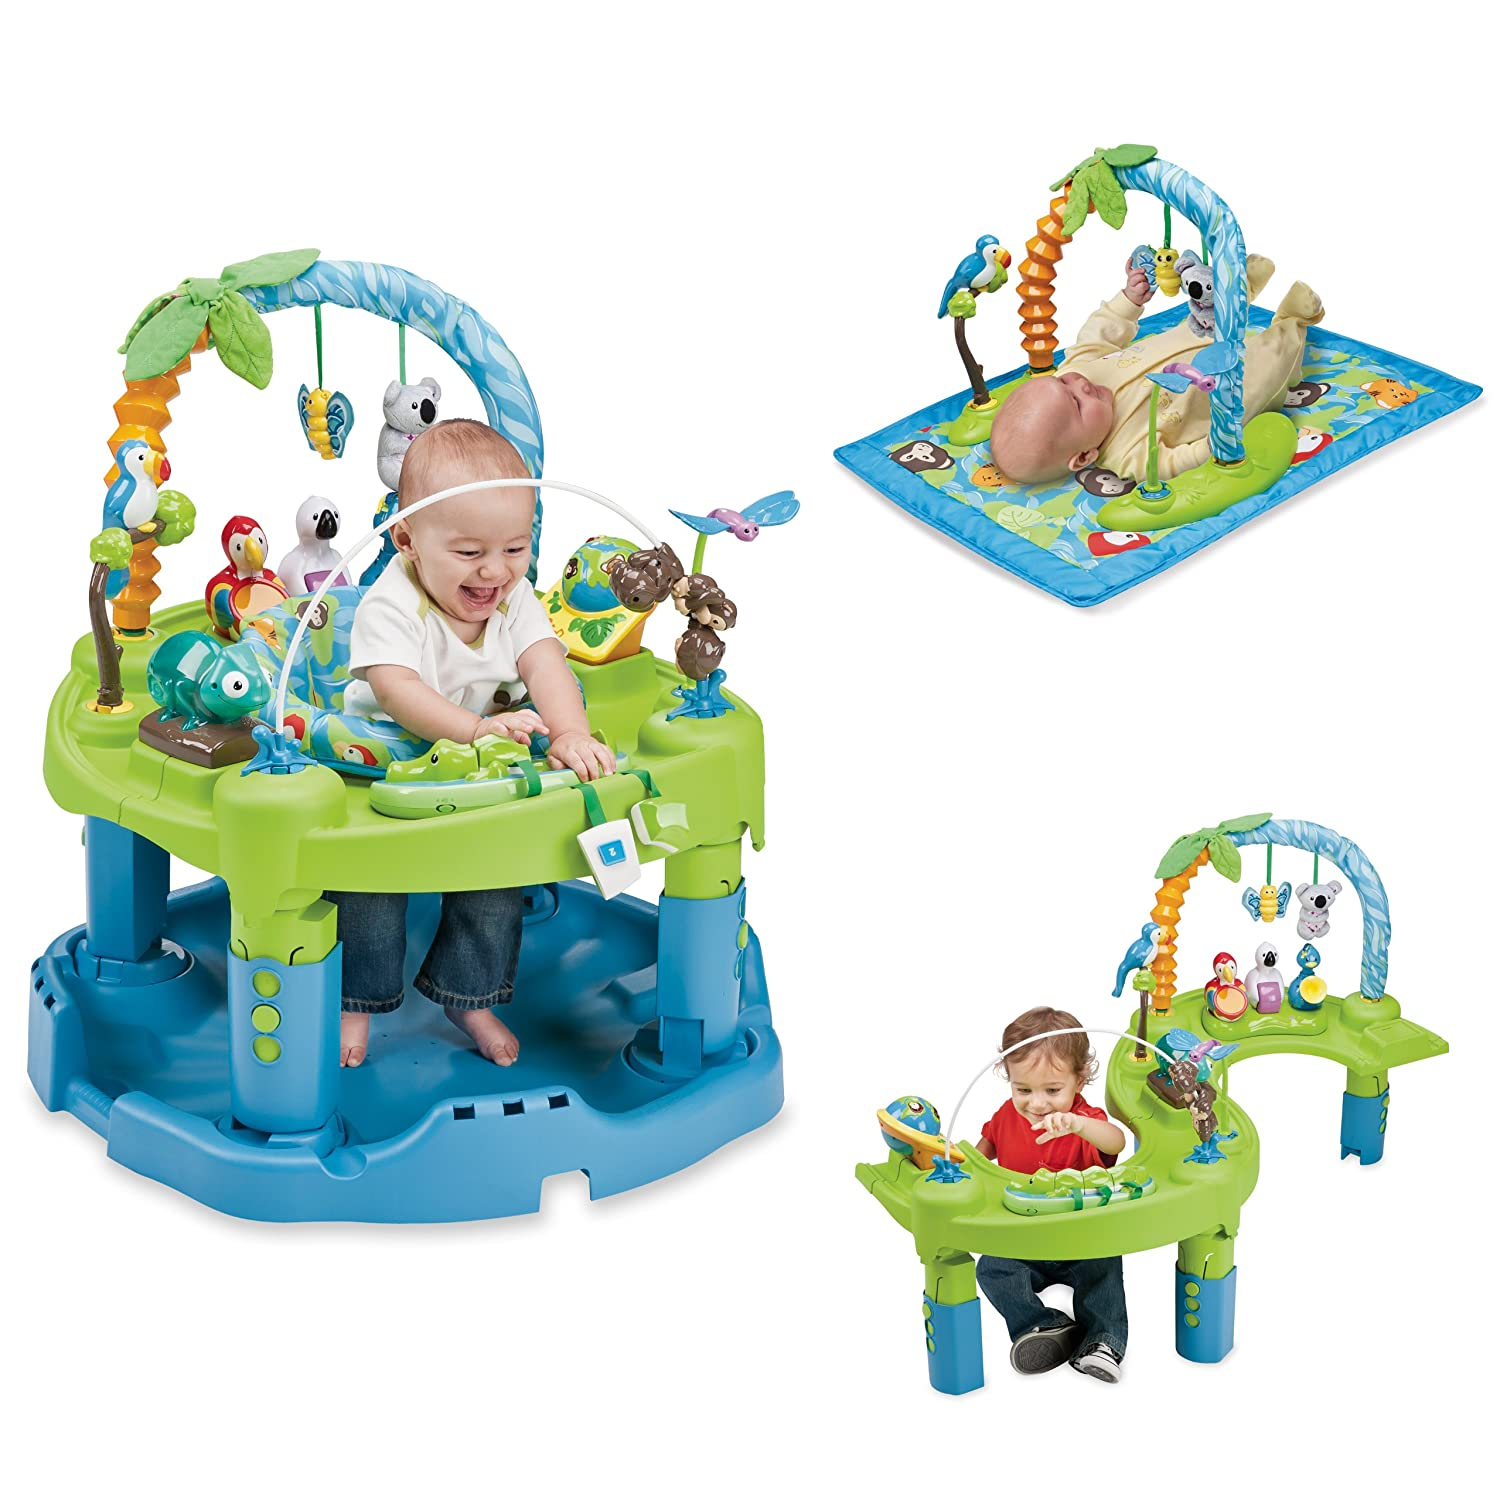 evenflo exersaucer triple fun  jungle amazoncouk toys  games -